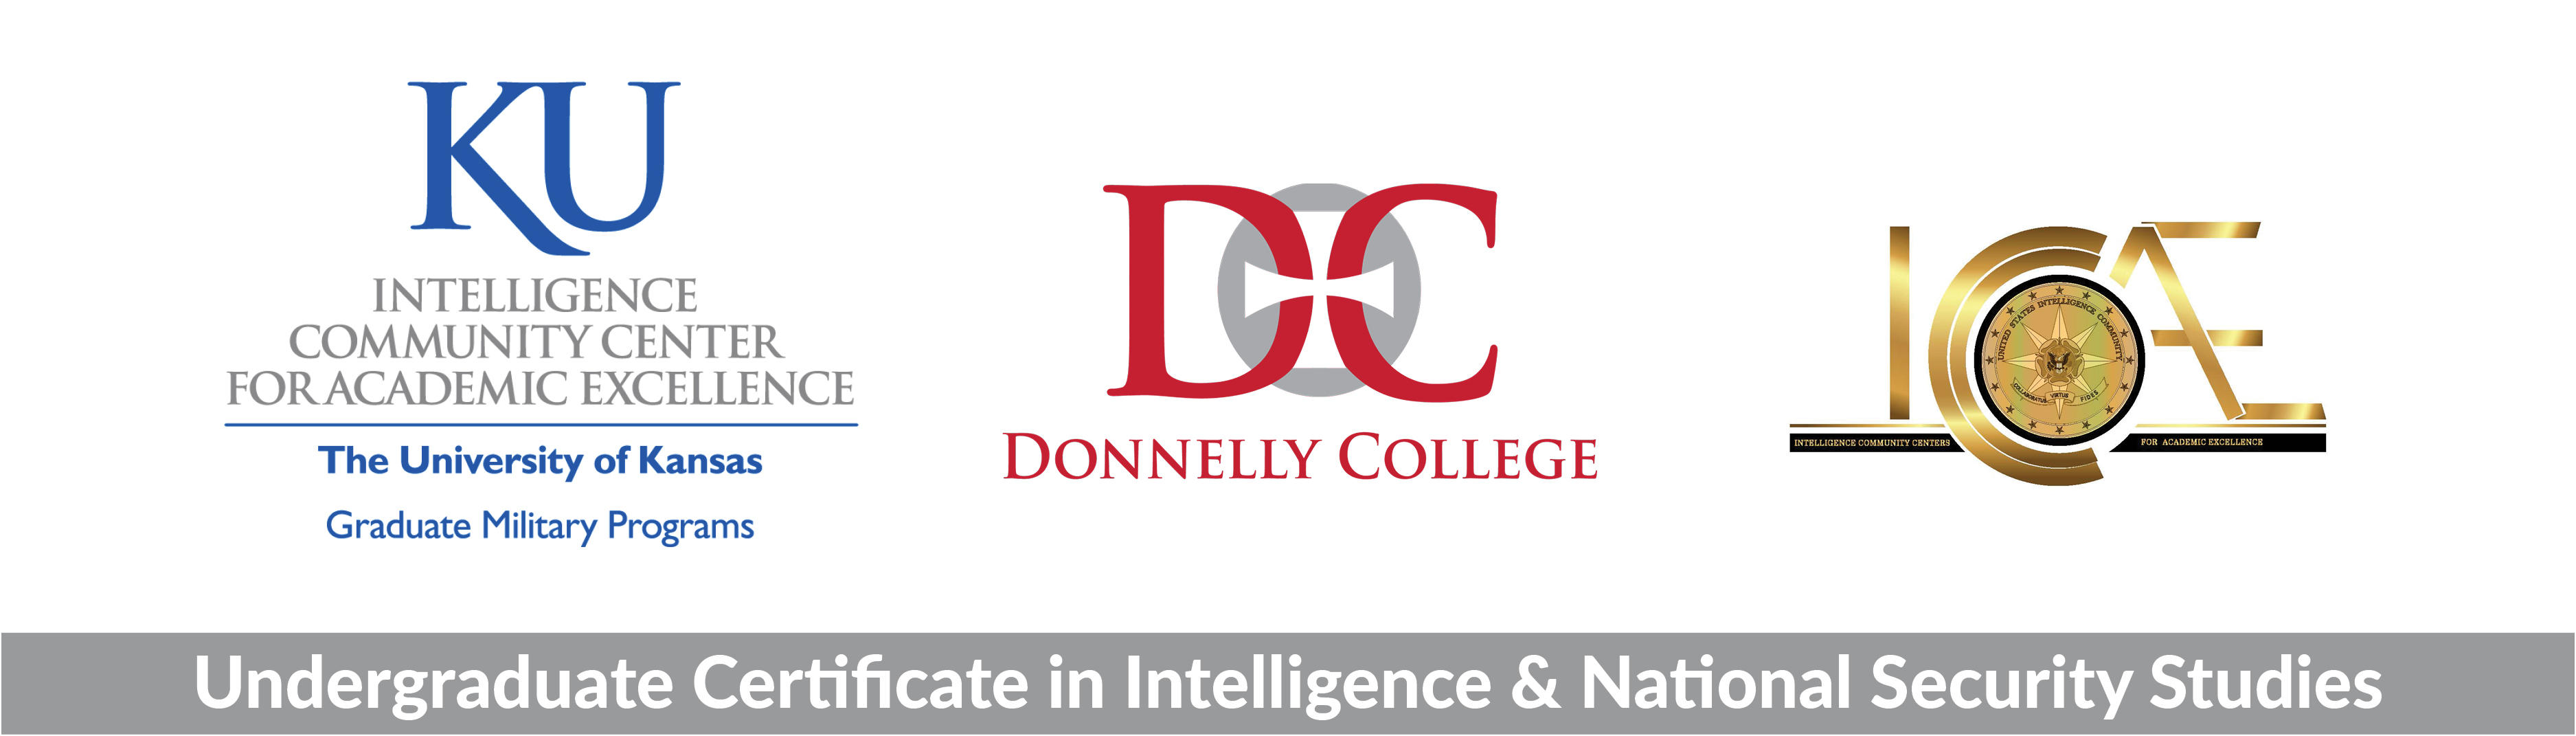 Header image with Donnelly, KU and ICCAE logos